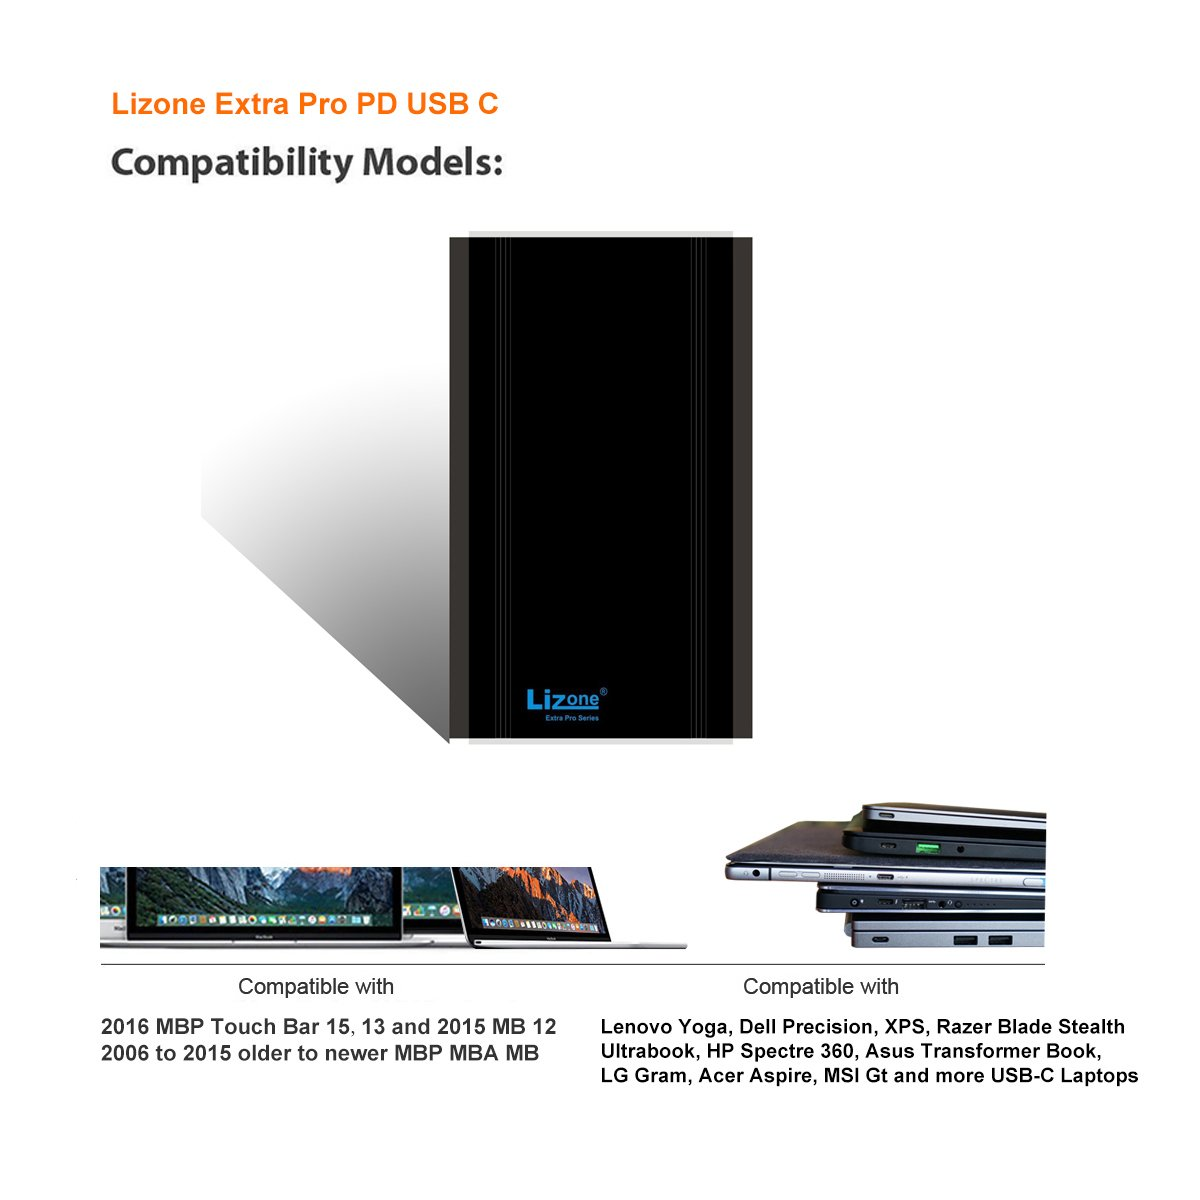 Lizone Extra Pro 50000mAh PD USB C External Battery Power Bank Portable Charger for 2016 2017 Macbook Pro HP Spectre Lenovo Yoga Asus LG Dell Razer Blade Stealth Acer PD USB-C Laptop Tablet Smartphone by Lizone (Image #2)